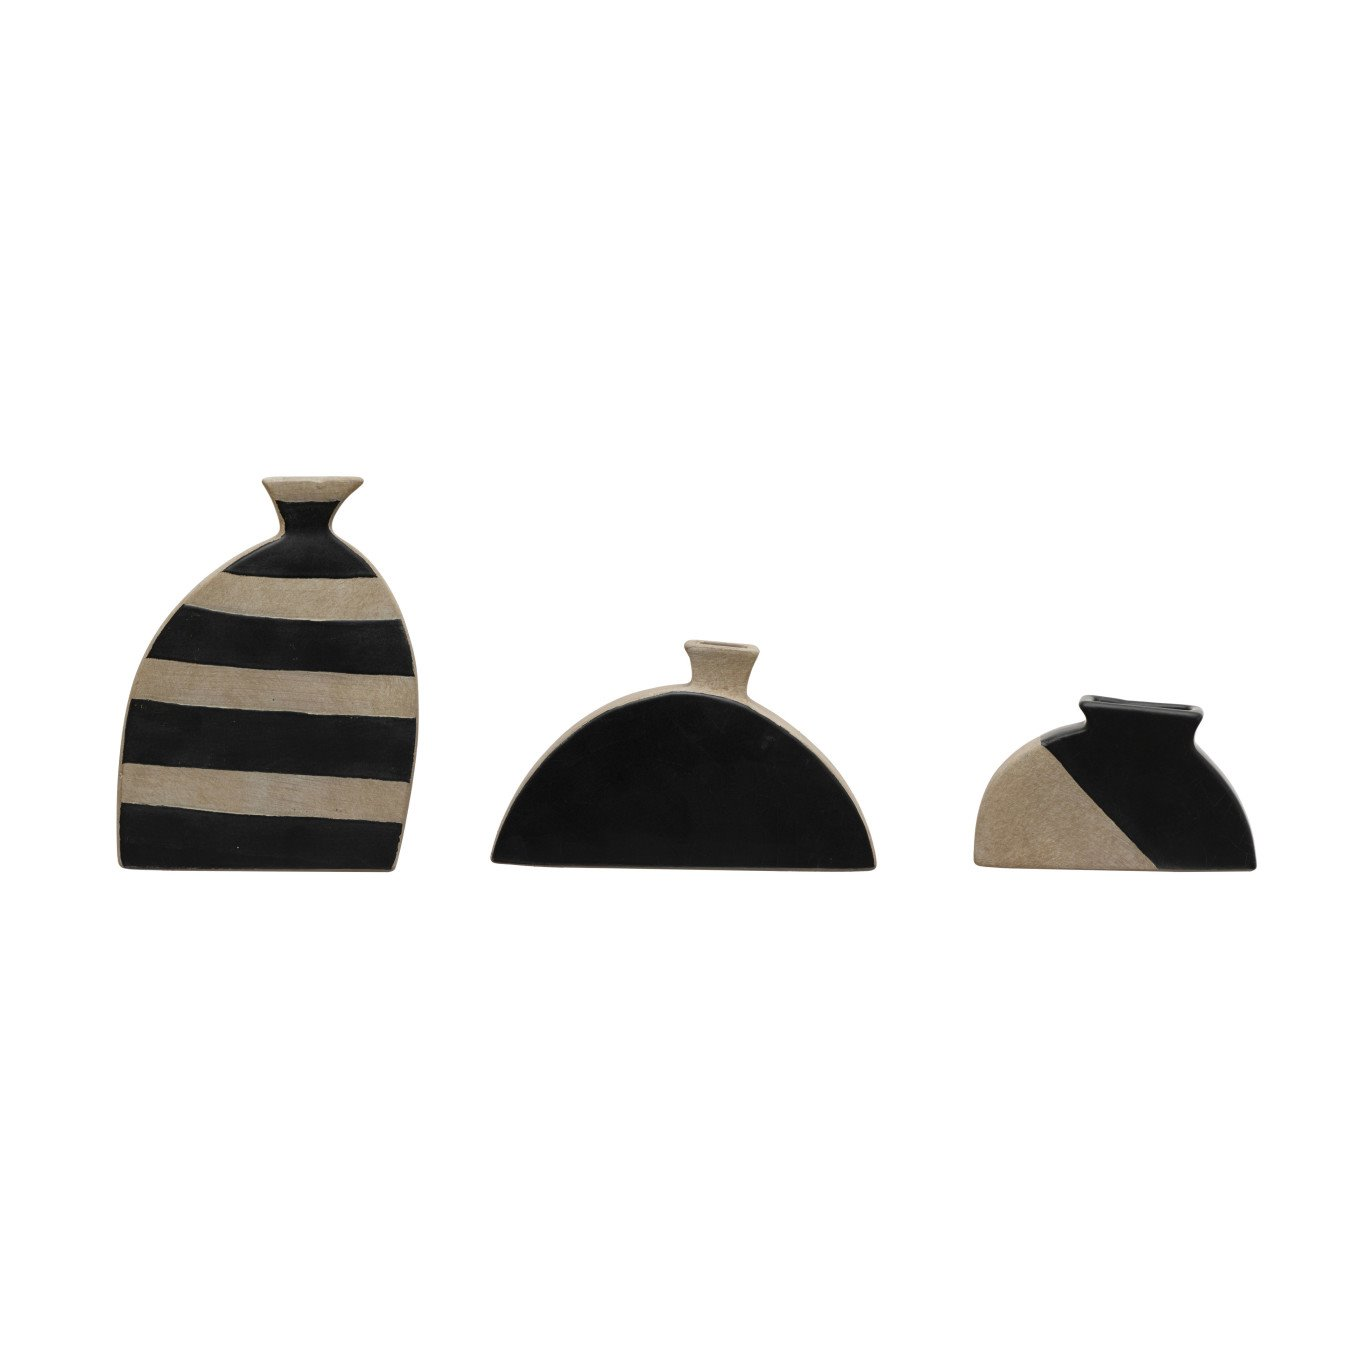 Terra-cotta Vases, Natural & Black, Set of 3